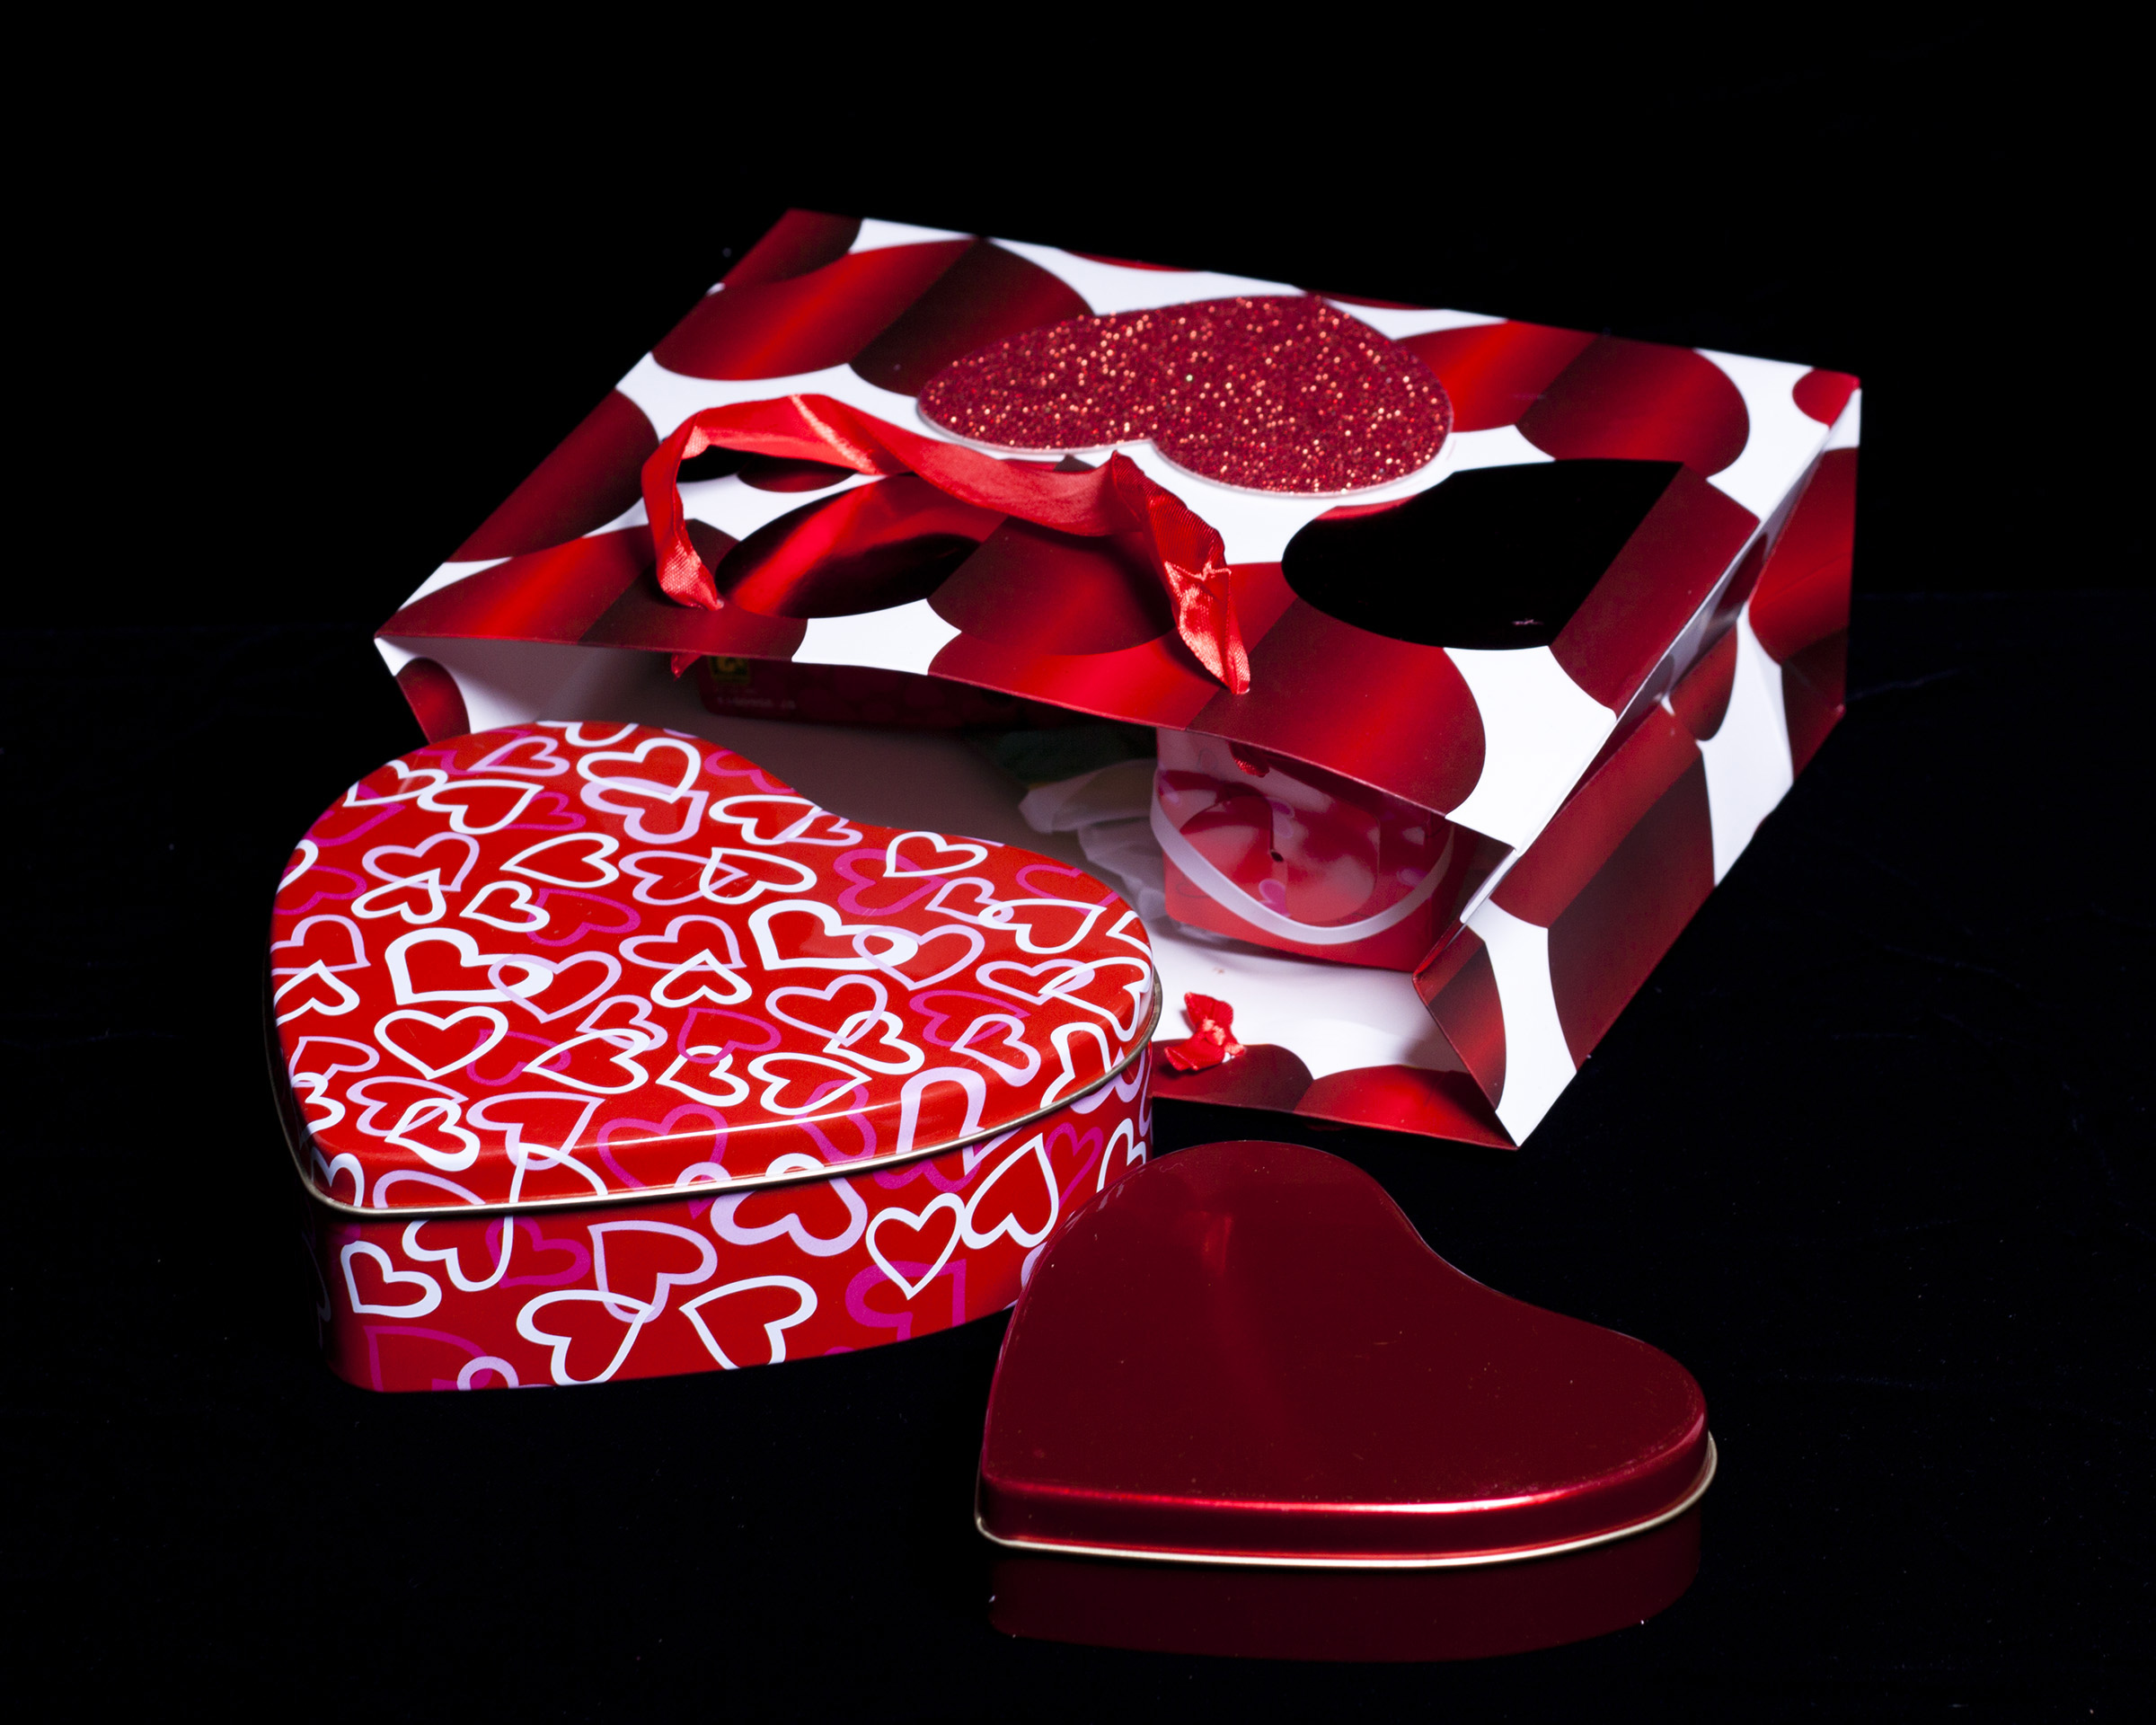 Heart Shaped Gift Boxes, Affection, Ribbon, Objects, Package, HQ Photo